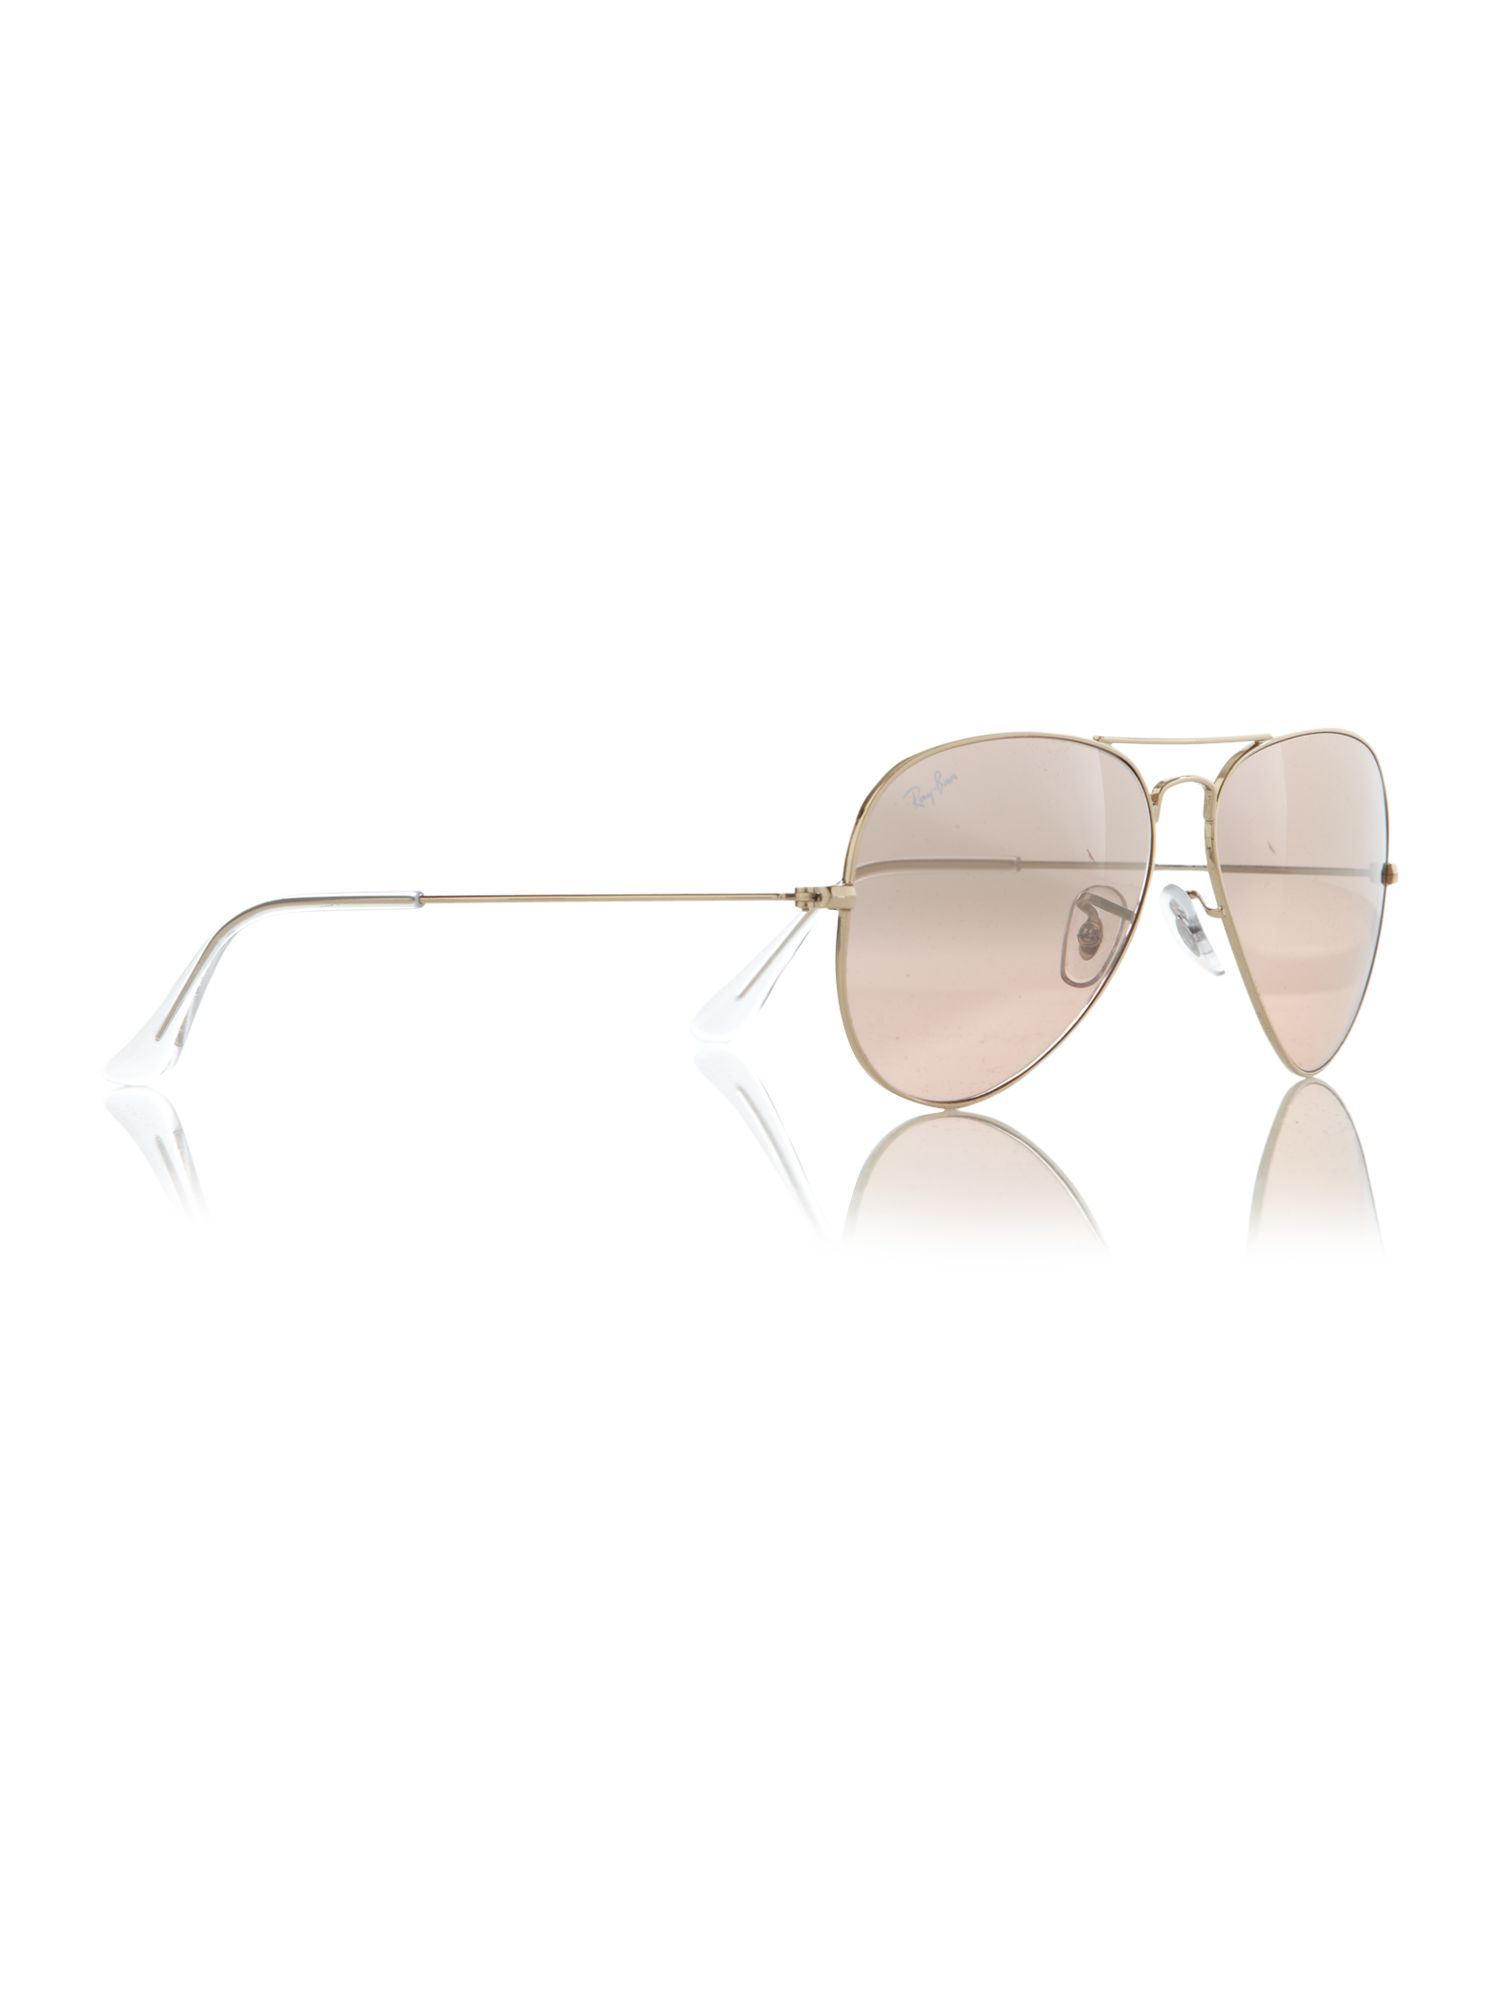 Unisex RB3025 001/3E L.Metal Aviator Sunglasses